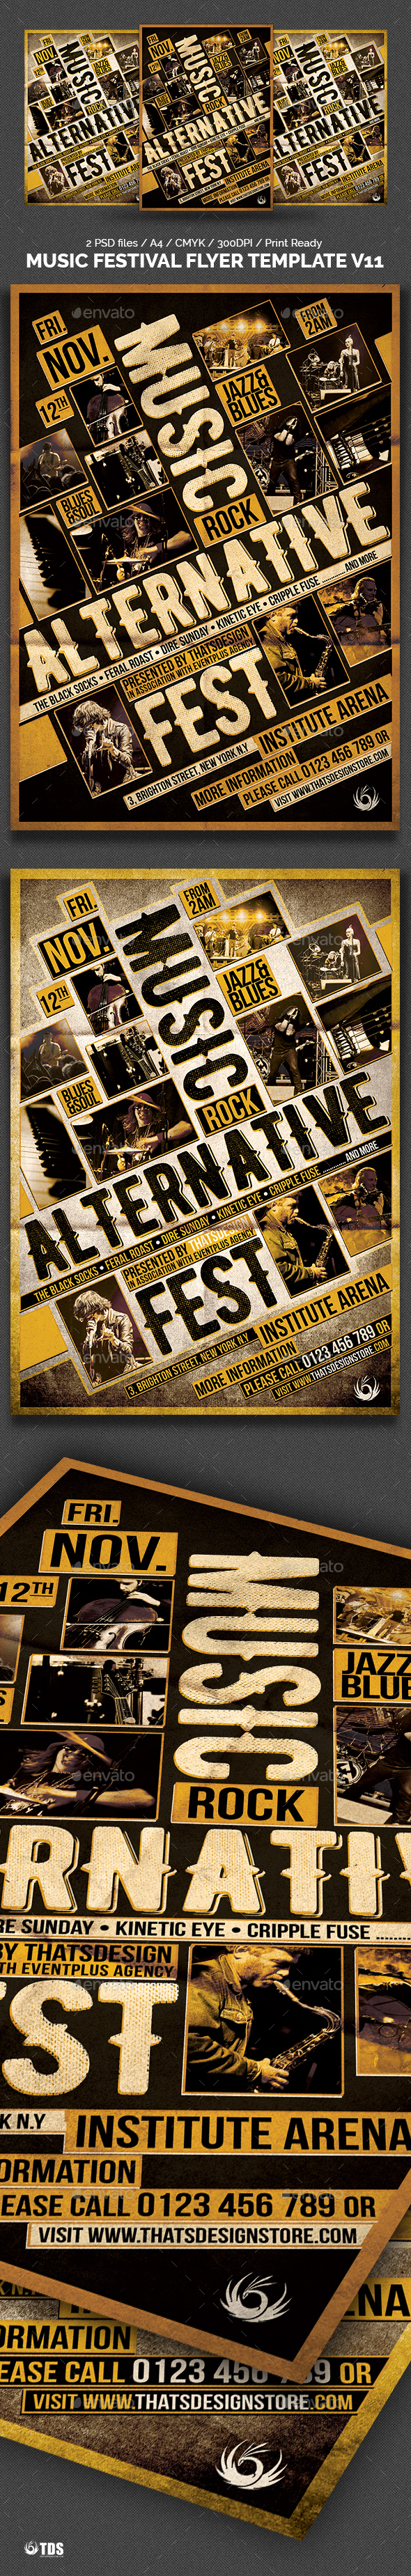 Music Festival Flyer Template V11